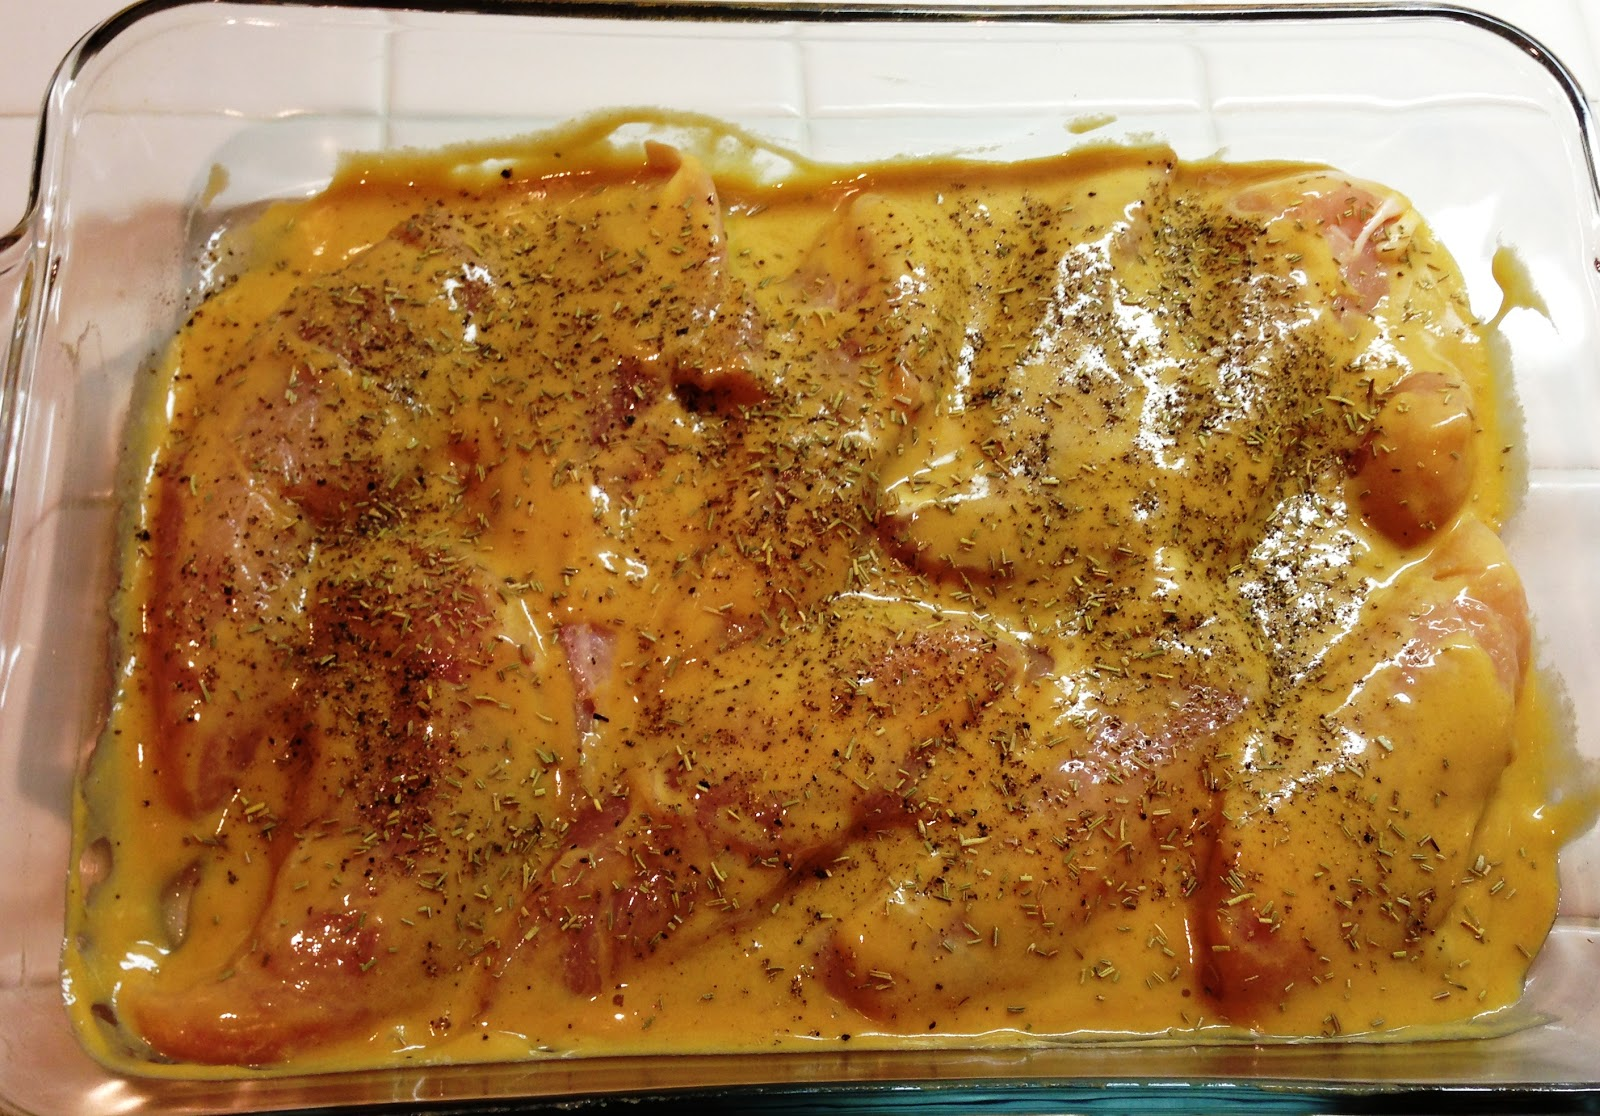 Oven Baked Chicken Breast Images & Pictures - Becuo